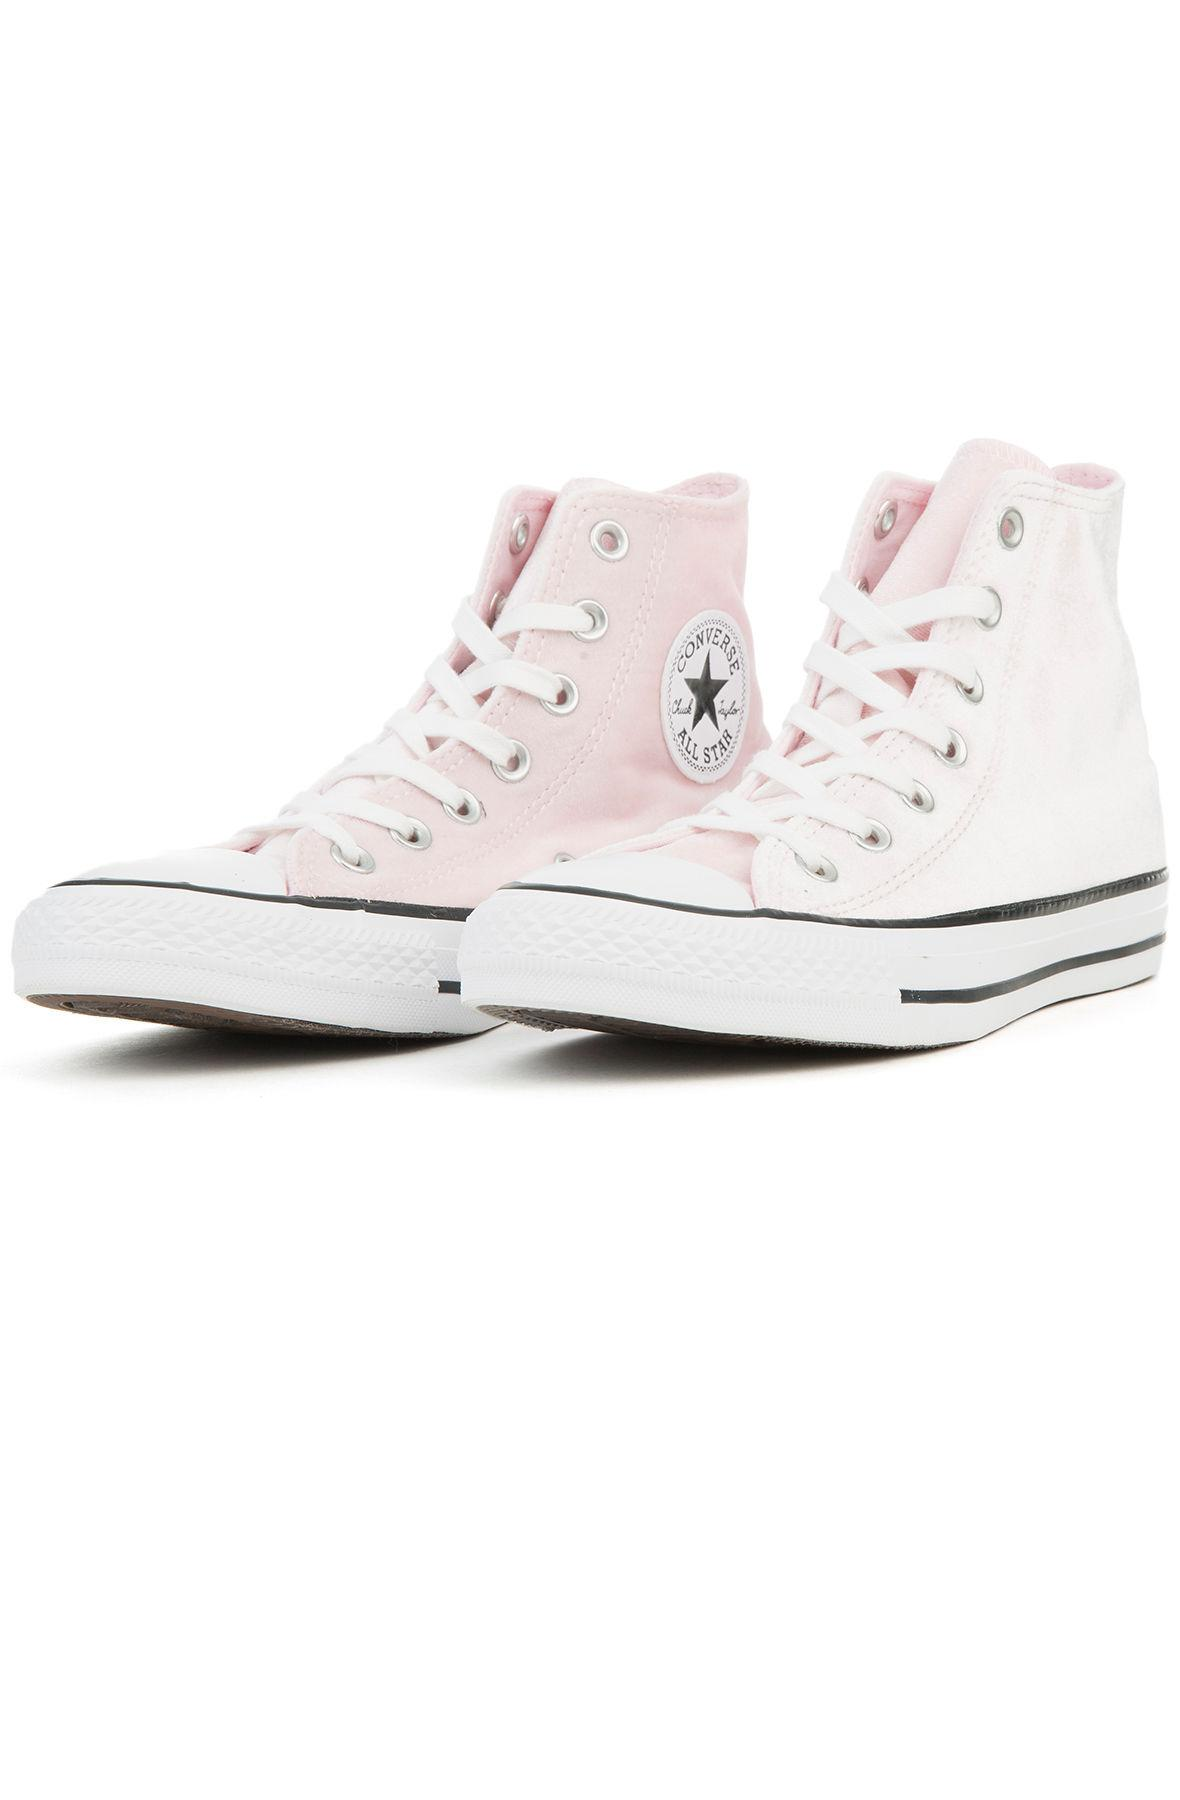 5f4eb05e8235 Lyst - Converse The Chuck Taylor All Star - Hi Velvet In Arctic Pink ...